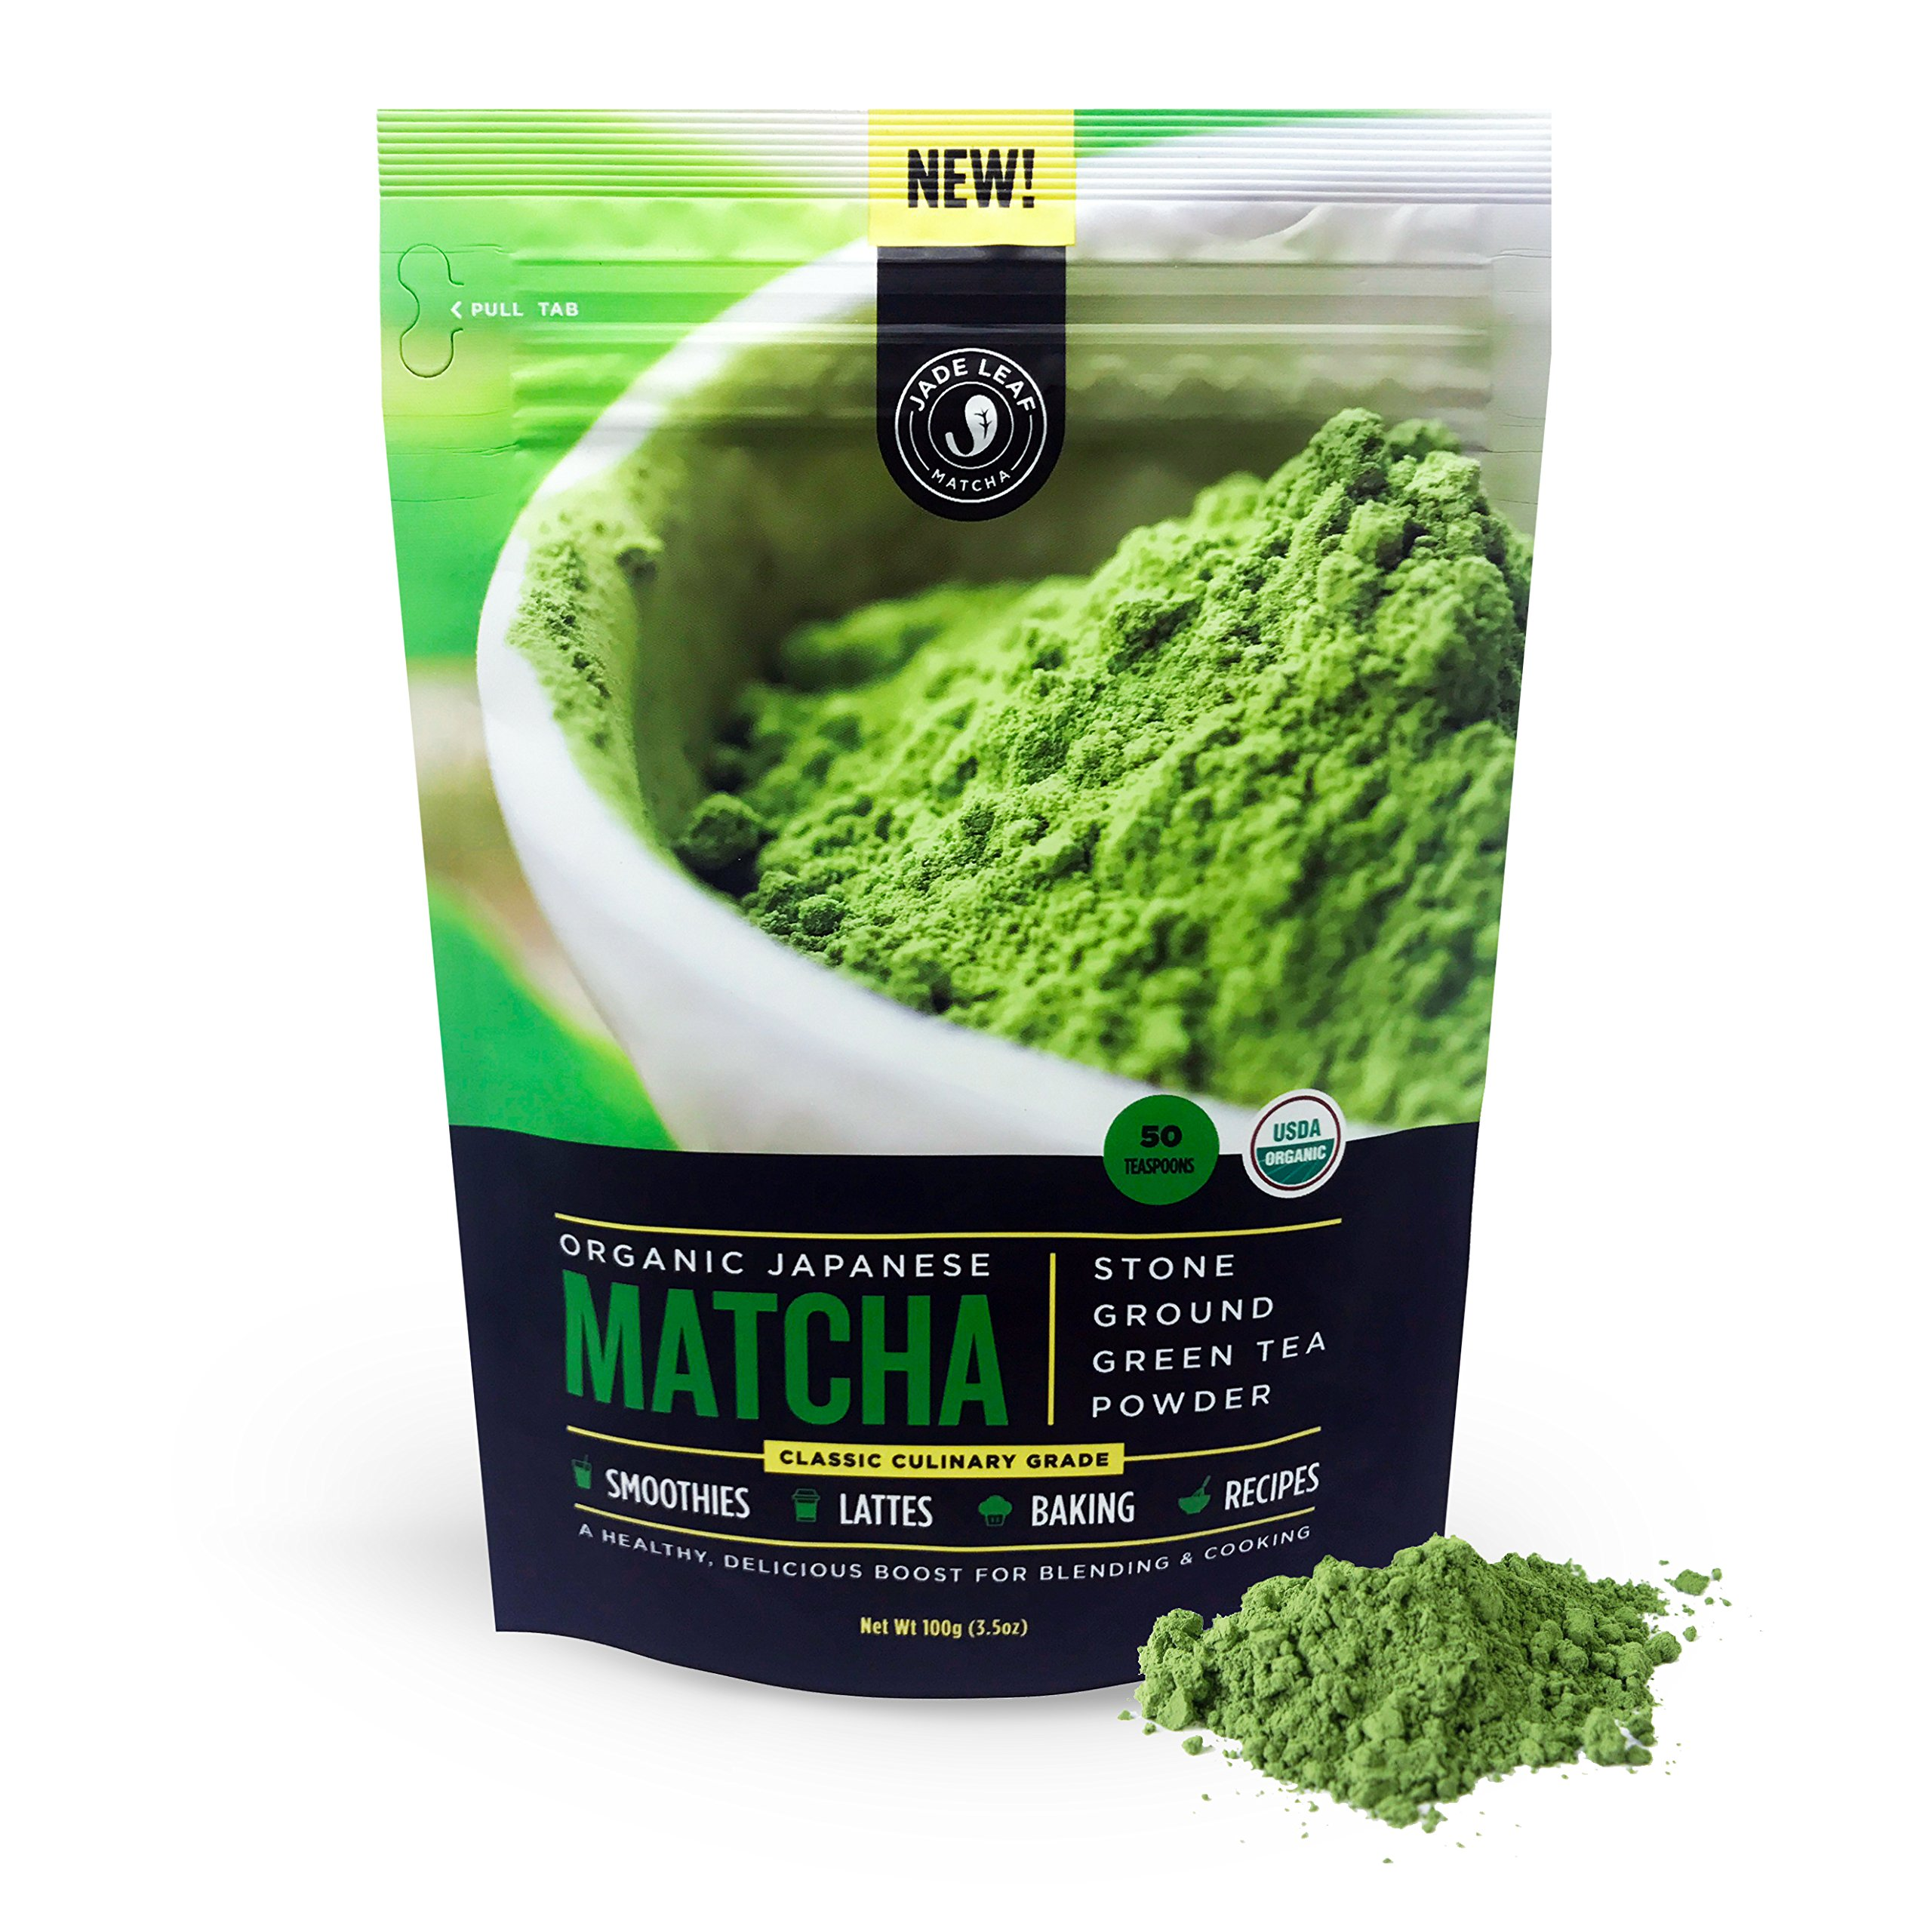 Jade Leaf - Organic Japanese Matcha Green Tea Powder - USDA Certified, Authentic Japanese Origin - Classic Culinary Grade (Smoothies, Lattes, Baking, Recipes) - Antioxidants, Energy [100g Value Size] by Jade Leaf Matcha